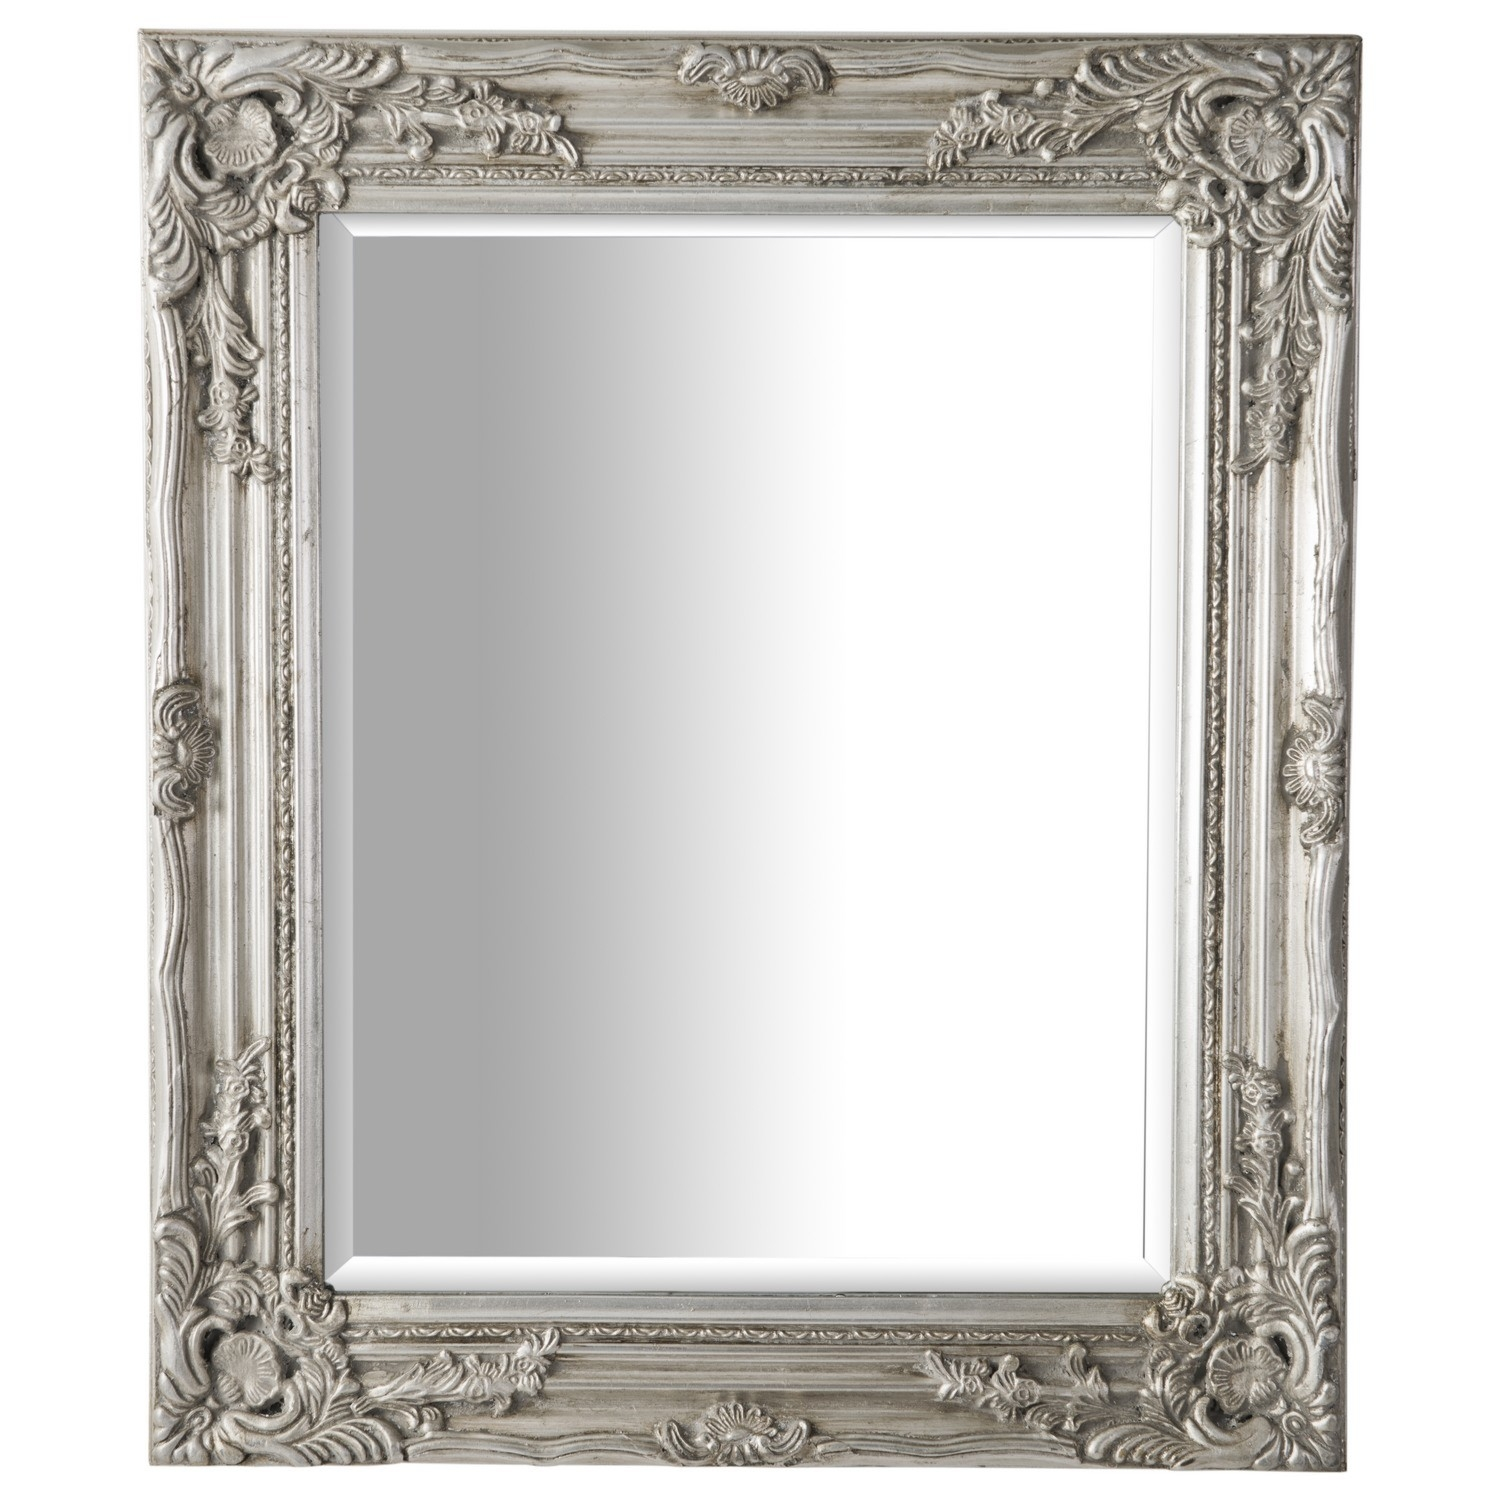 Antique Ornate Mirror Silver Pertaining To Ornate Silver Mirrors (View 4 of 15)